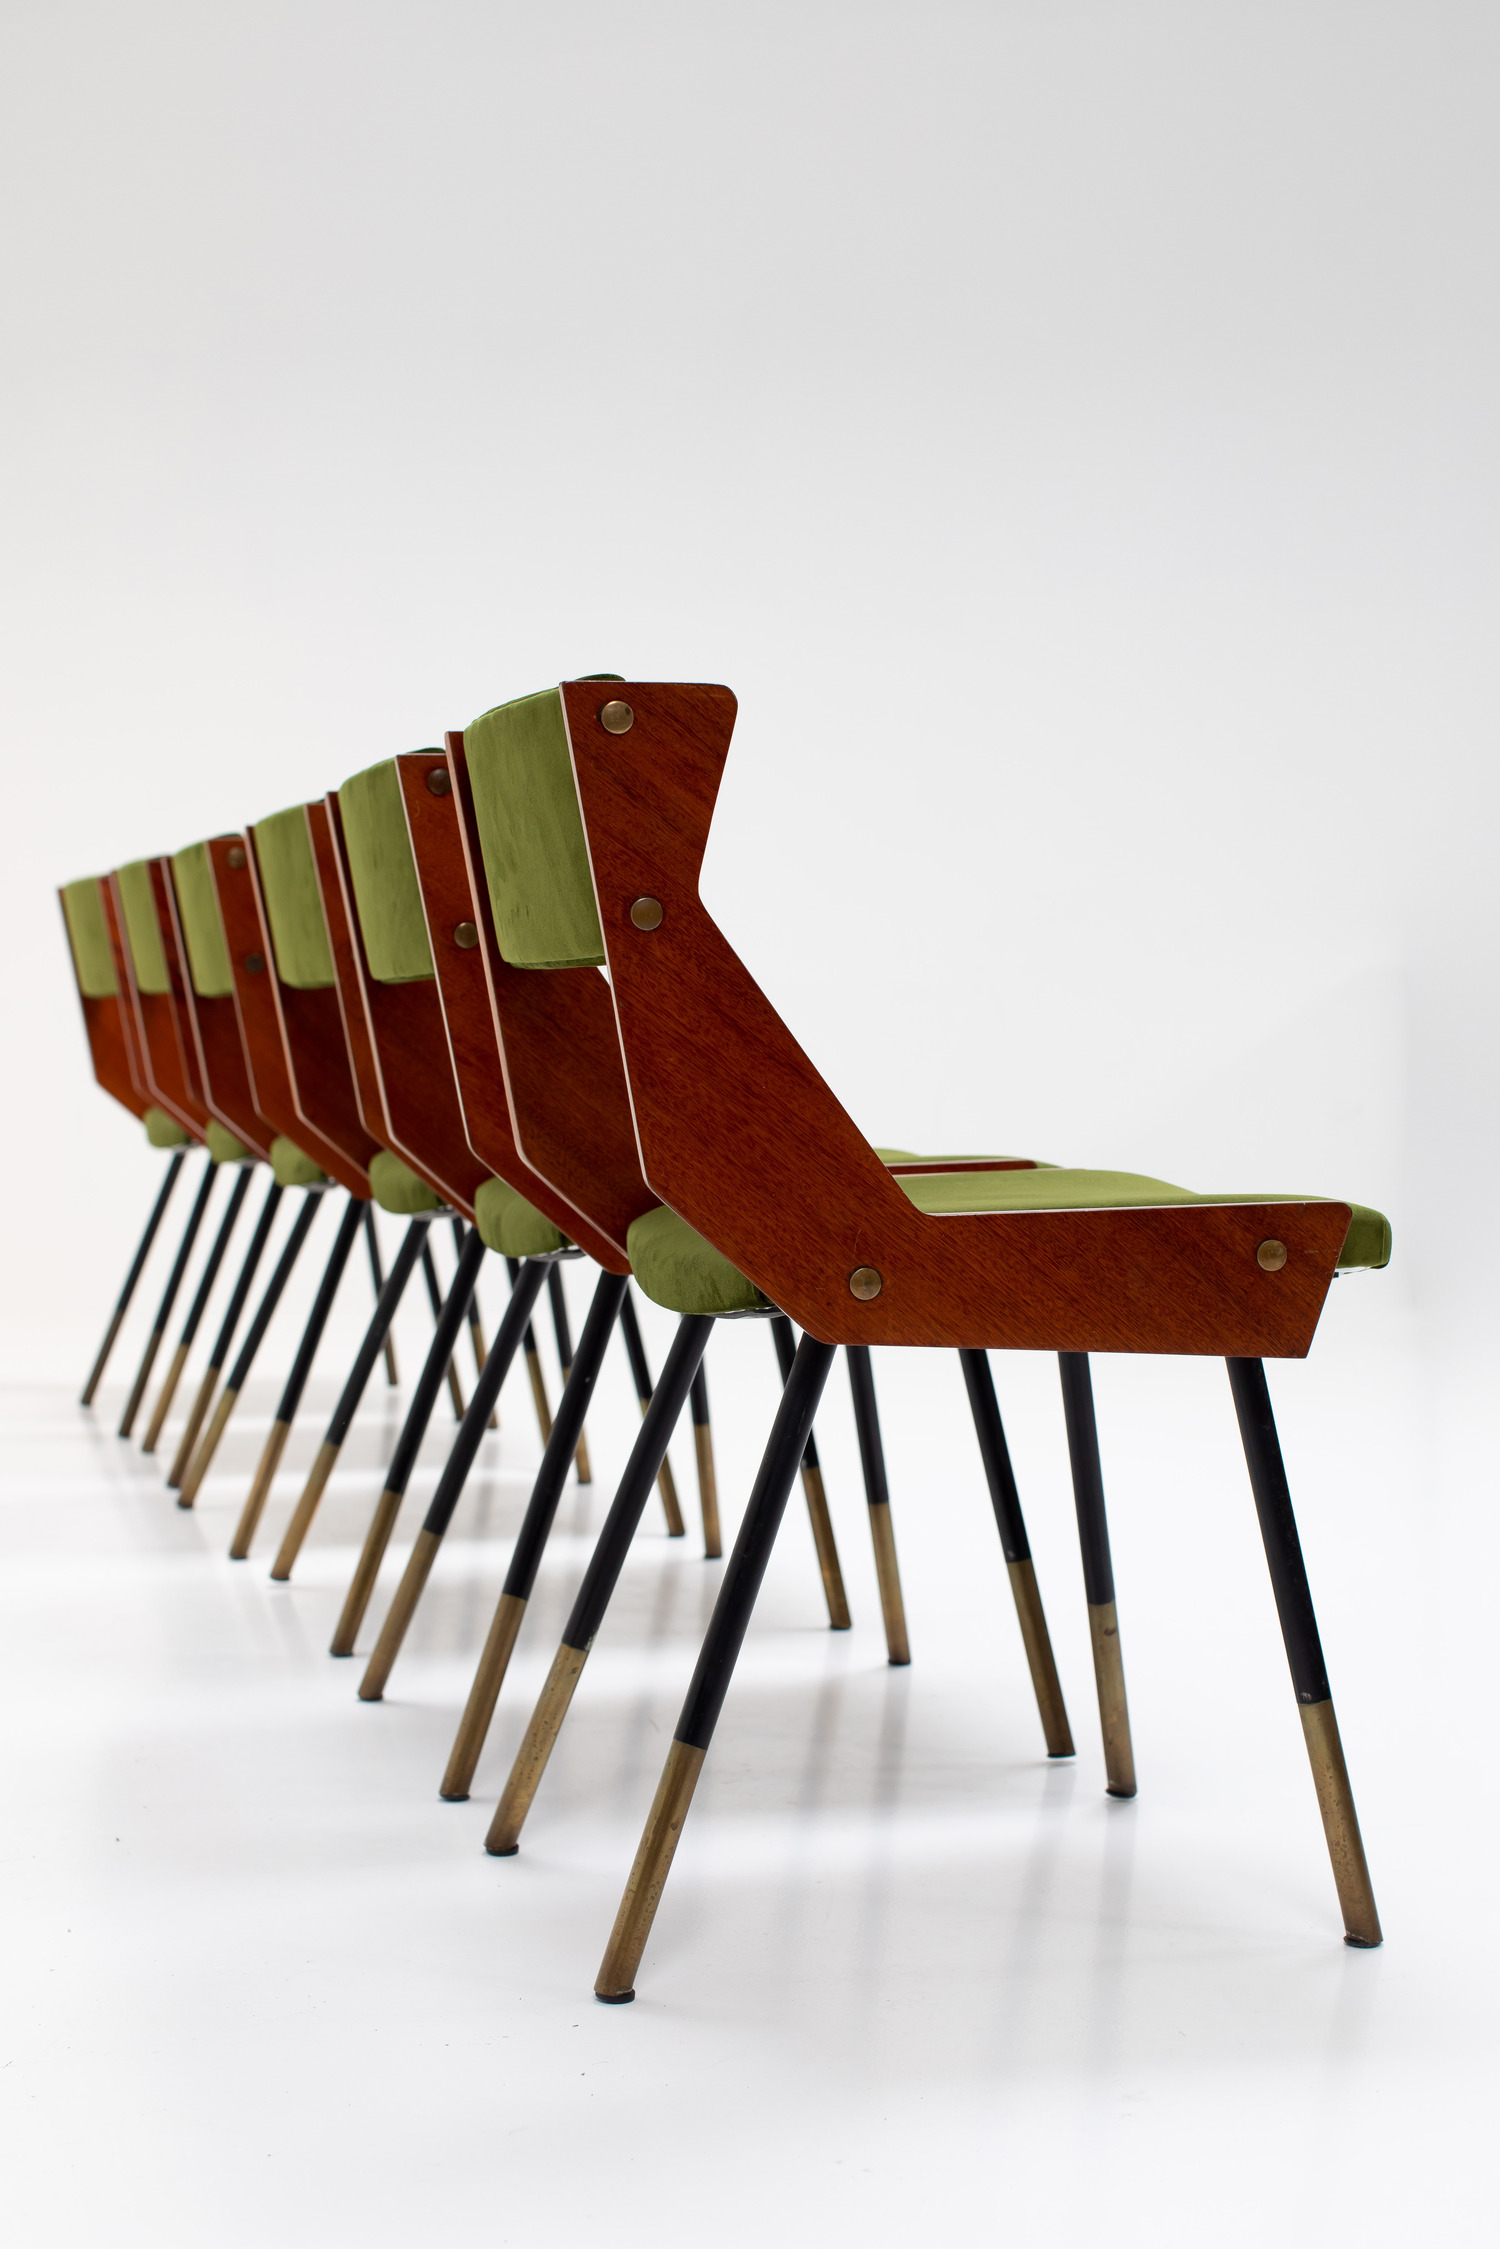 Gianfranco Frattini chairs